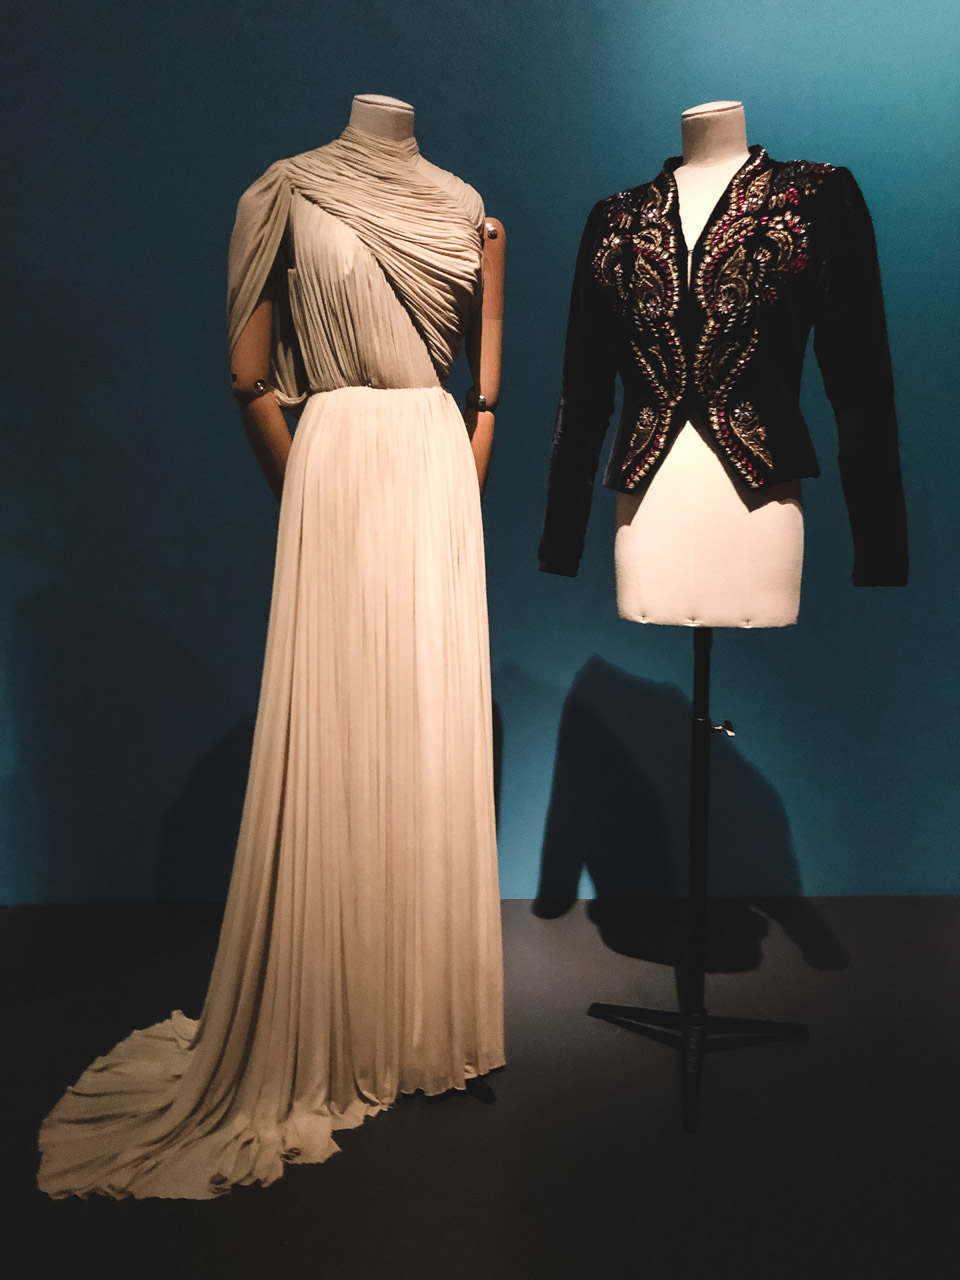 Clothes on display at the Museum at the Fashion Institute of Technology in New York